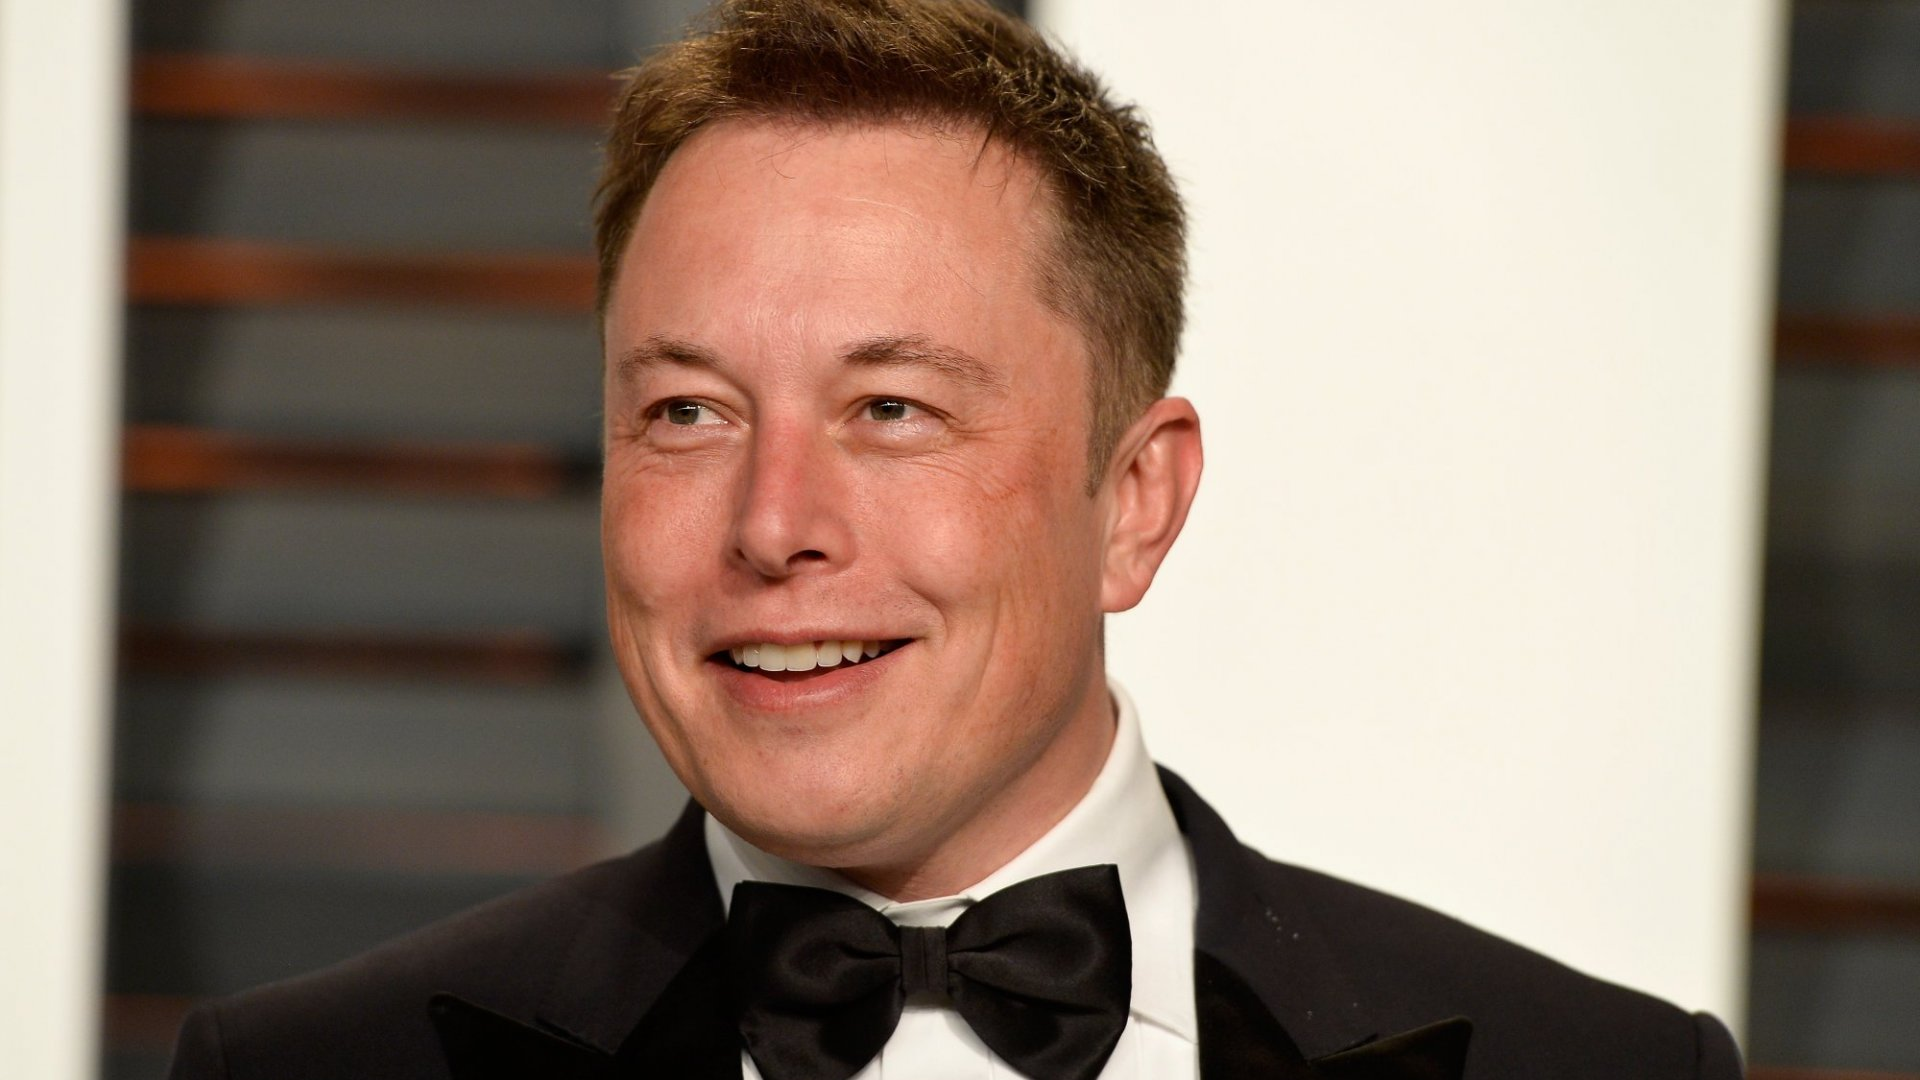 Tesla and SpaceX CEO Elon Musk, seen here in 2015, isn't setting a good sleep example.